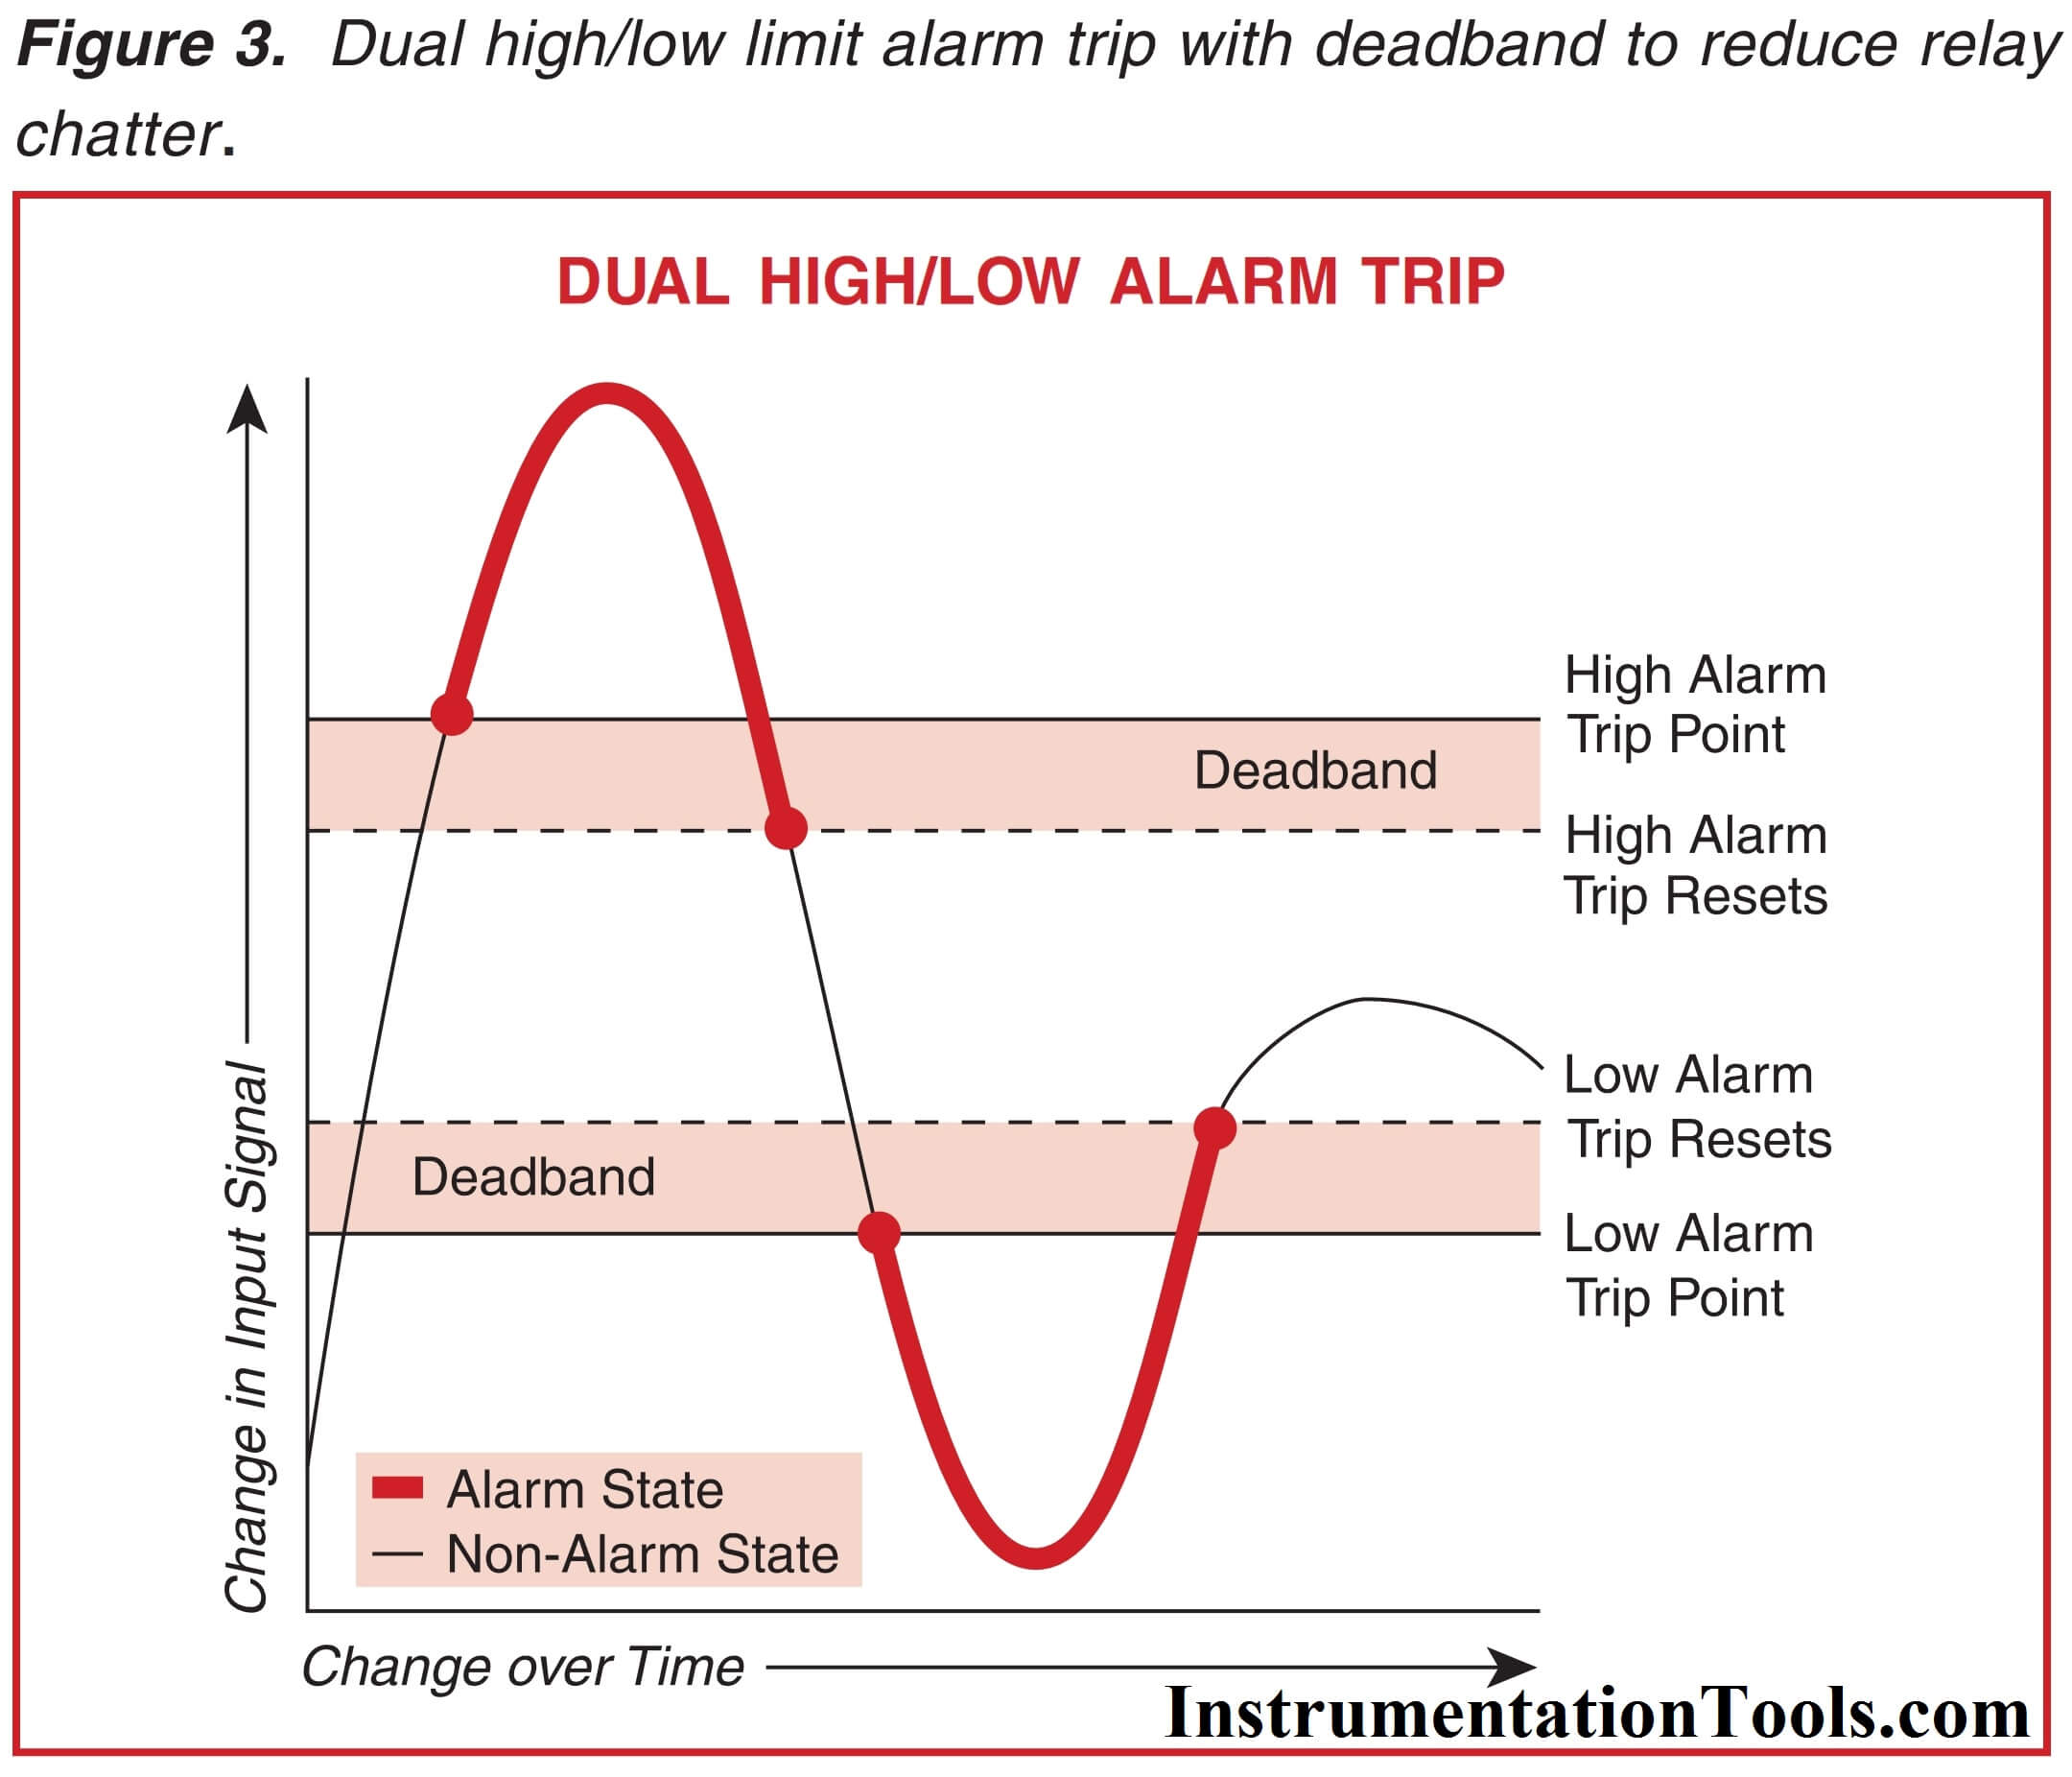 High-Low Alarm Trip